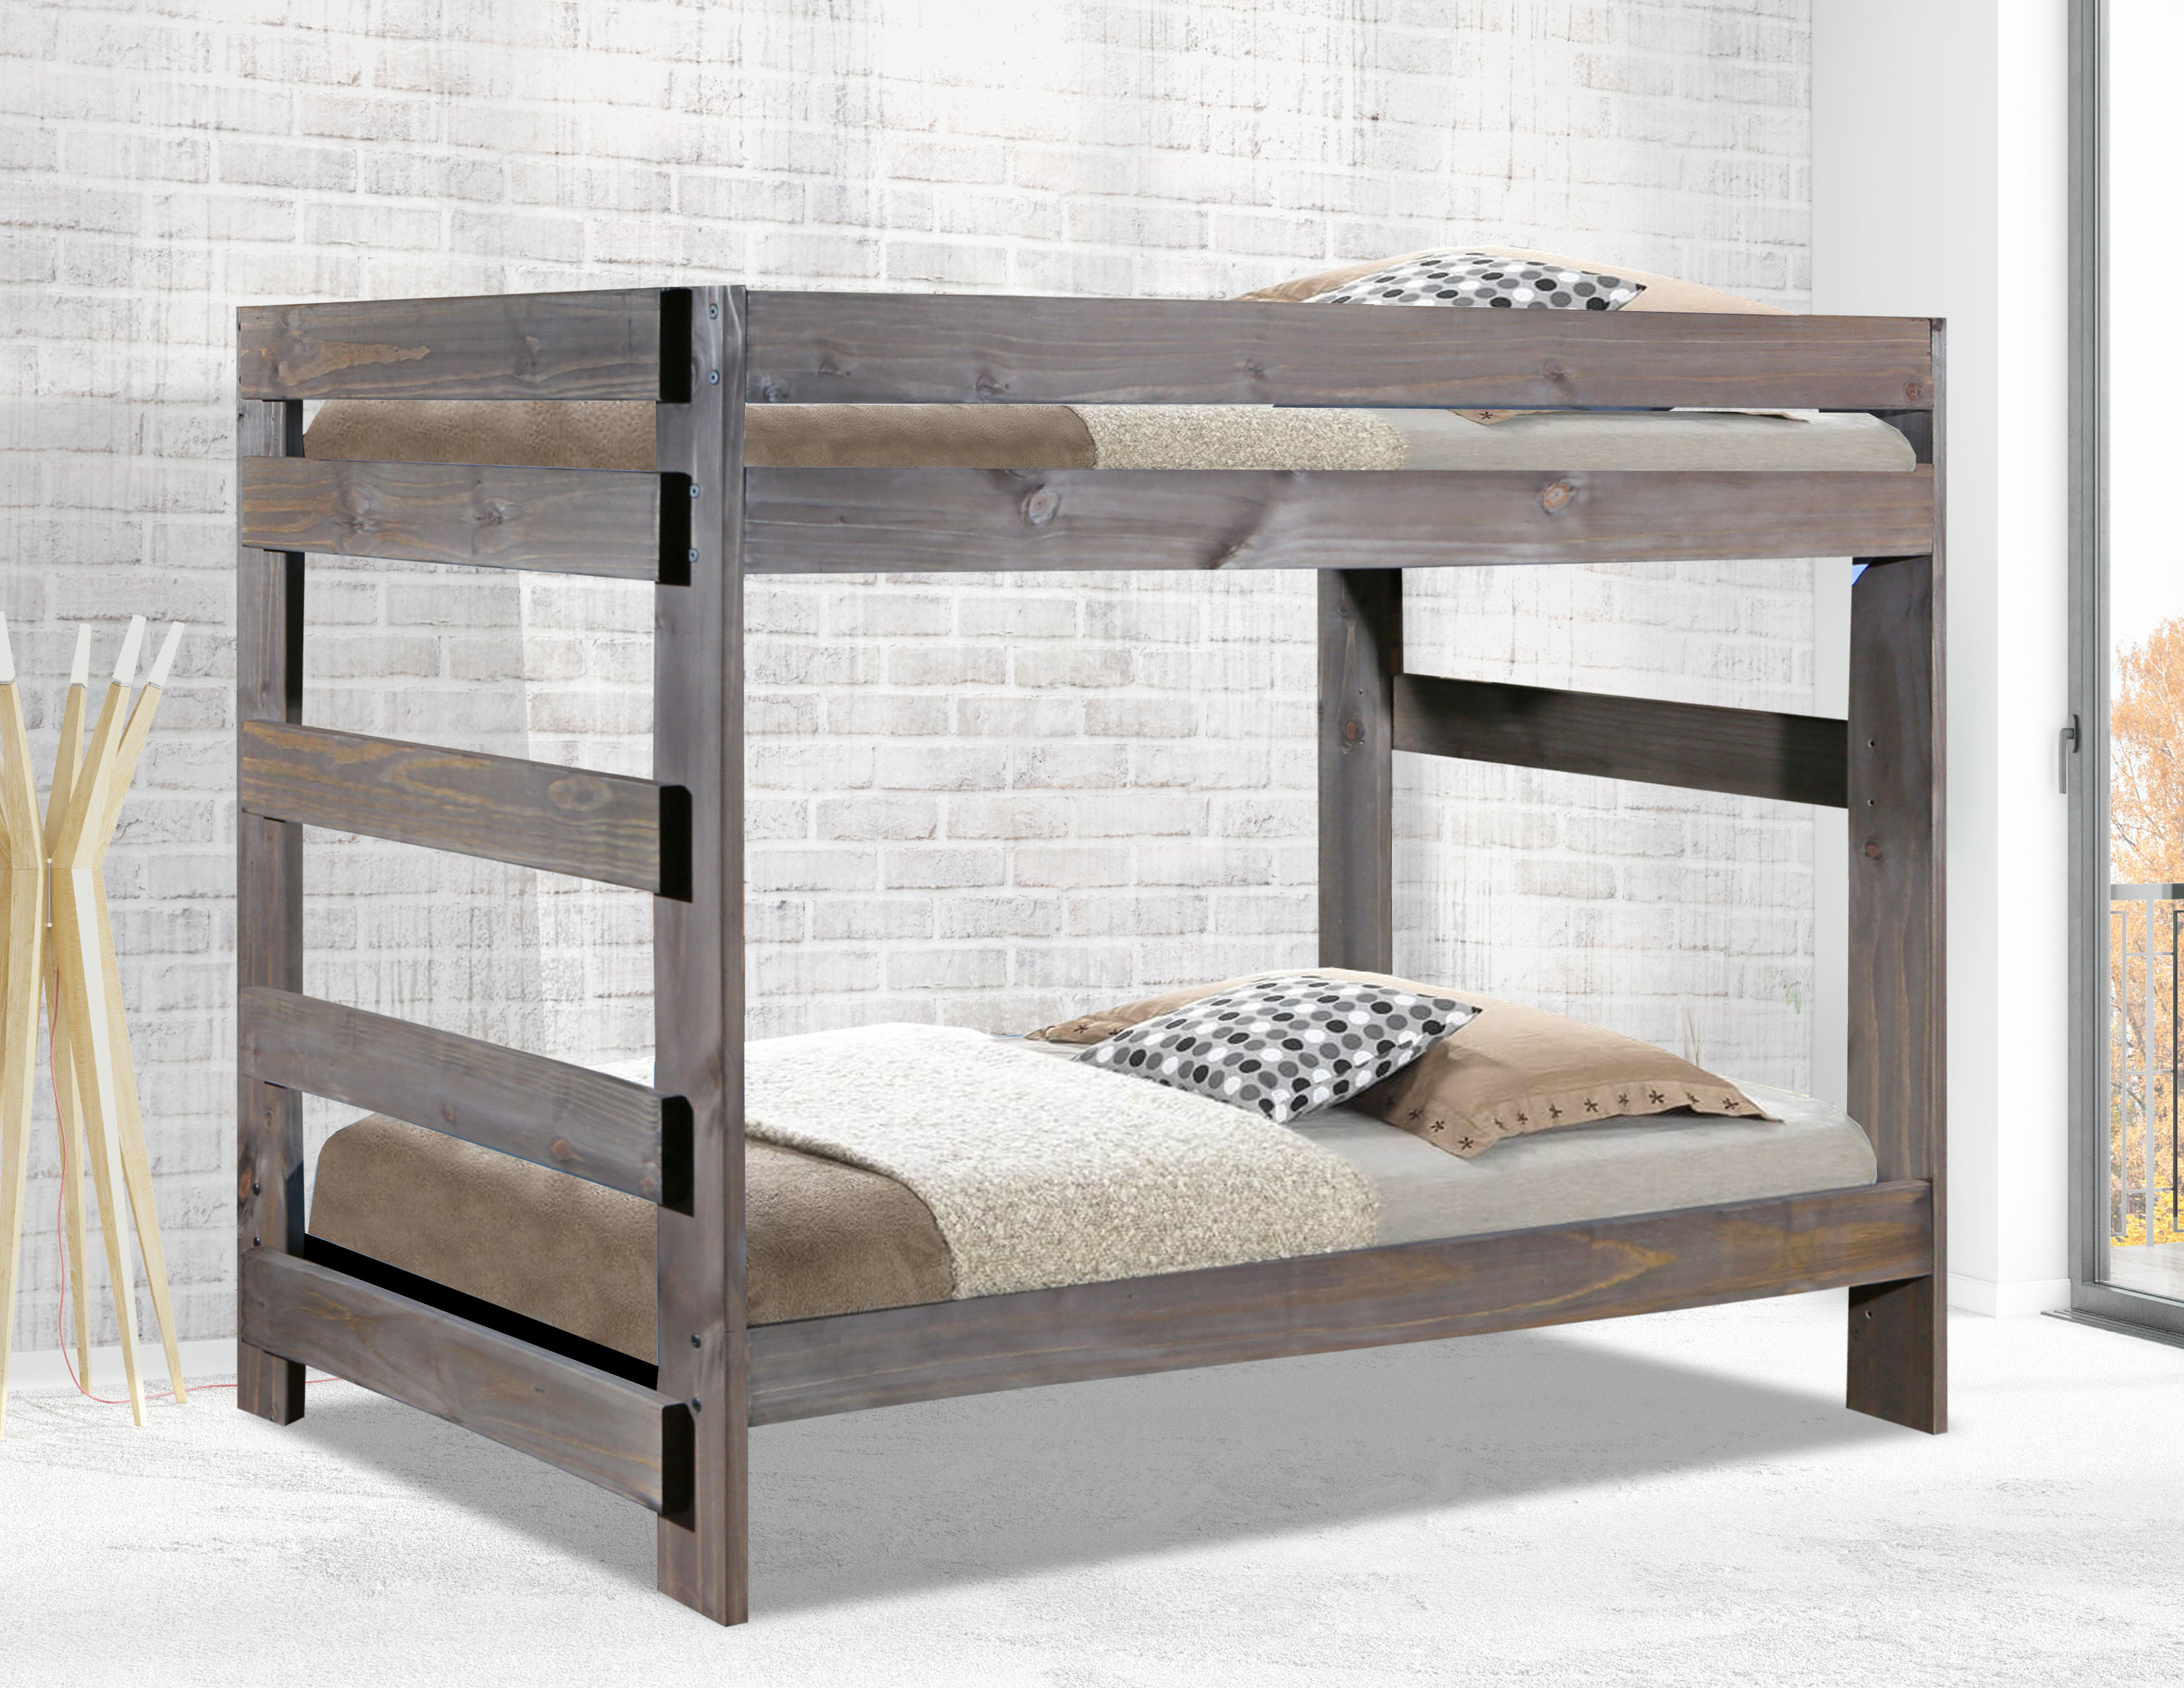 Twin One Piece Bunk Bed Shown In Barn Finish Roximate Embled Dimensions 80 L X 41 W 62 H Distance From Top Of Bottom Rail On To